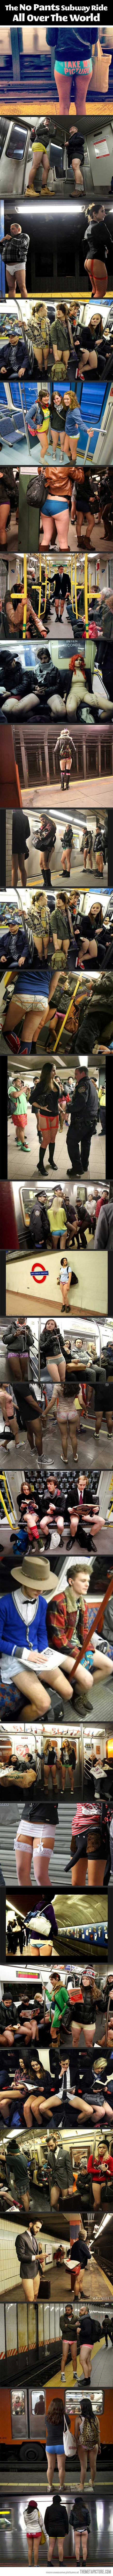 No pants subway ride… themetapicture.com makes my day a lot brighter!